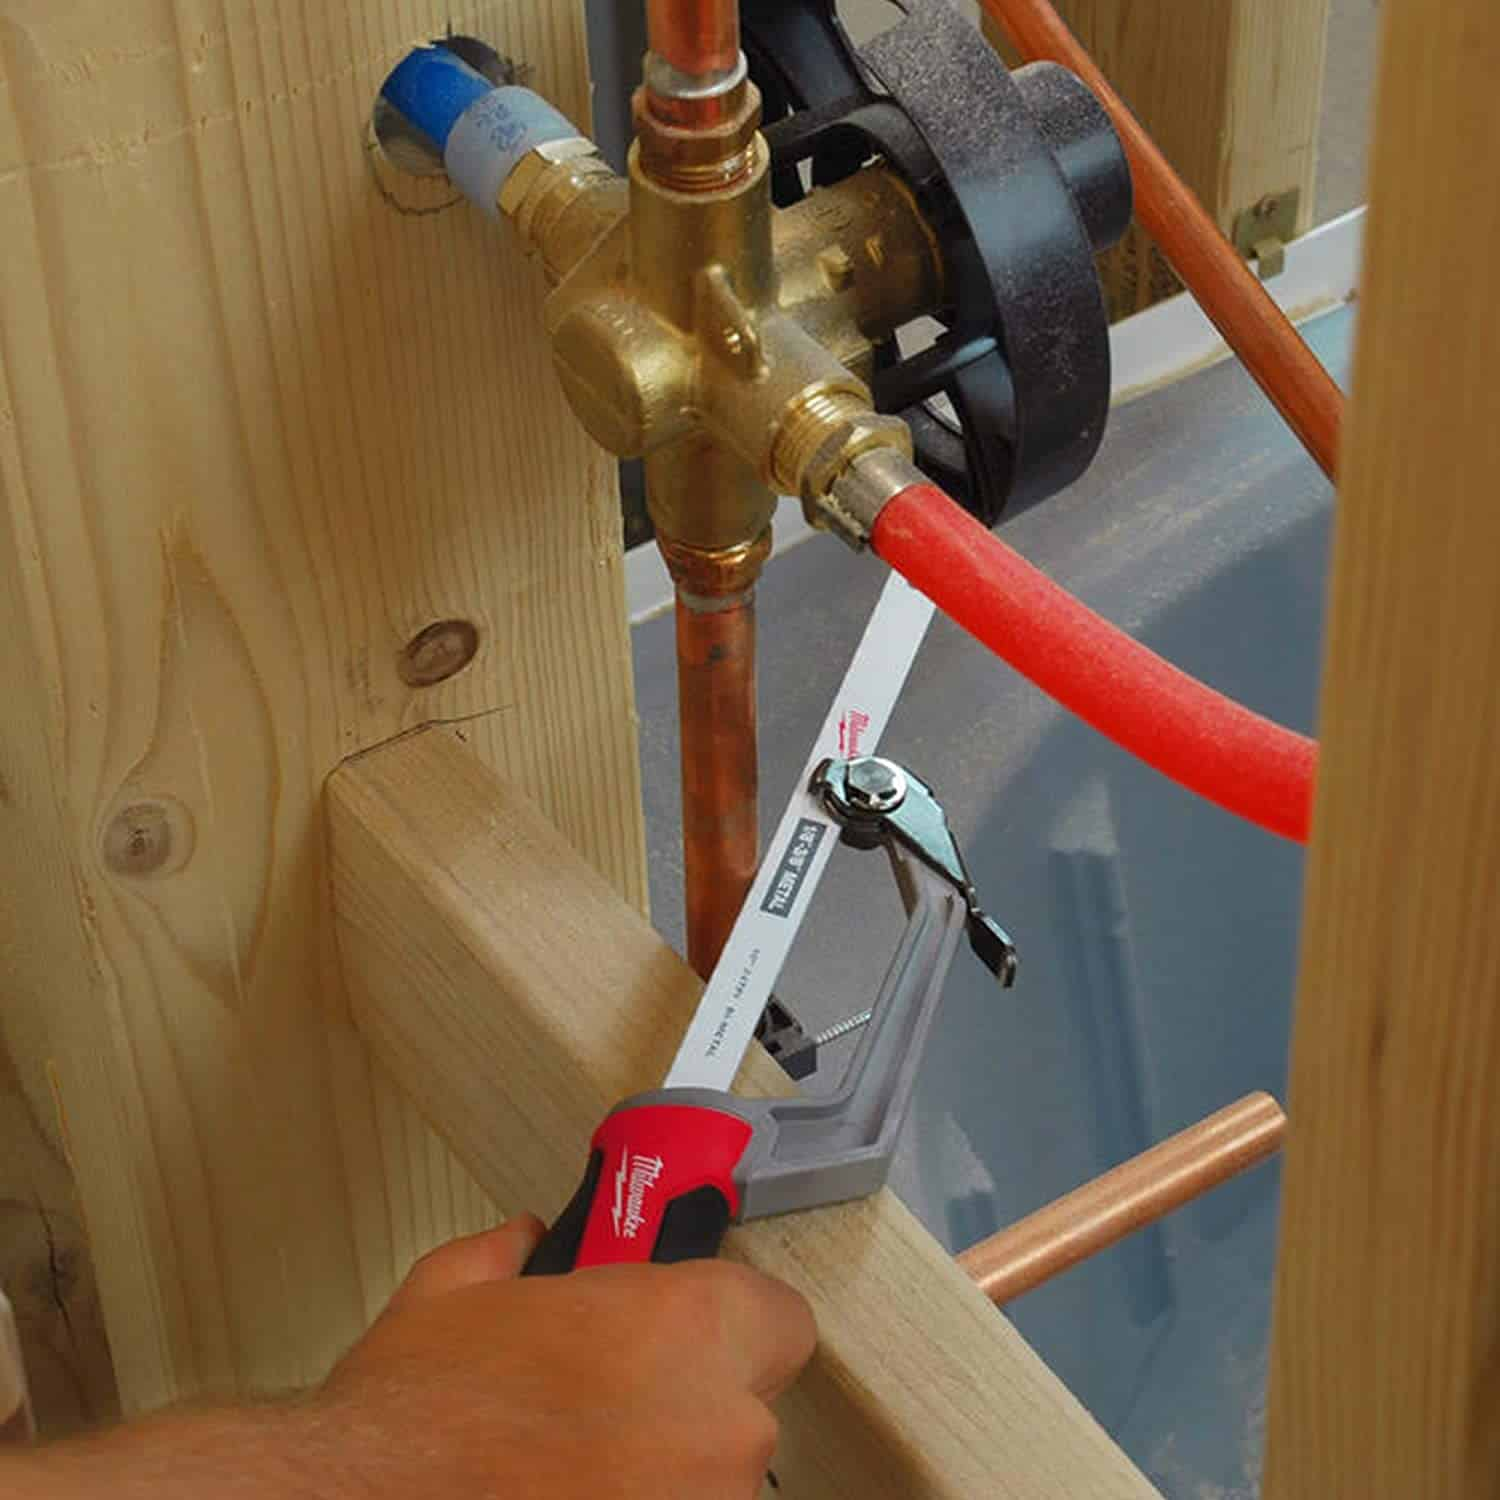 Best compact hacksaw for tight spaces- Milwaukee 48-22-0012 being used